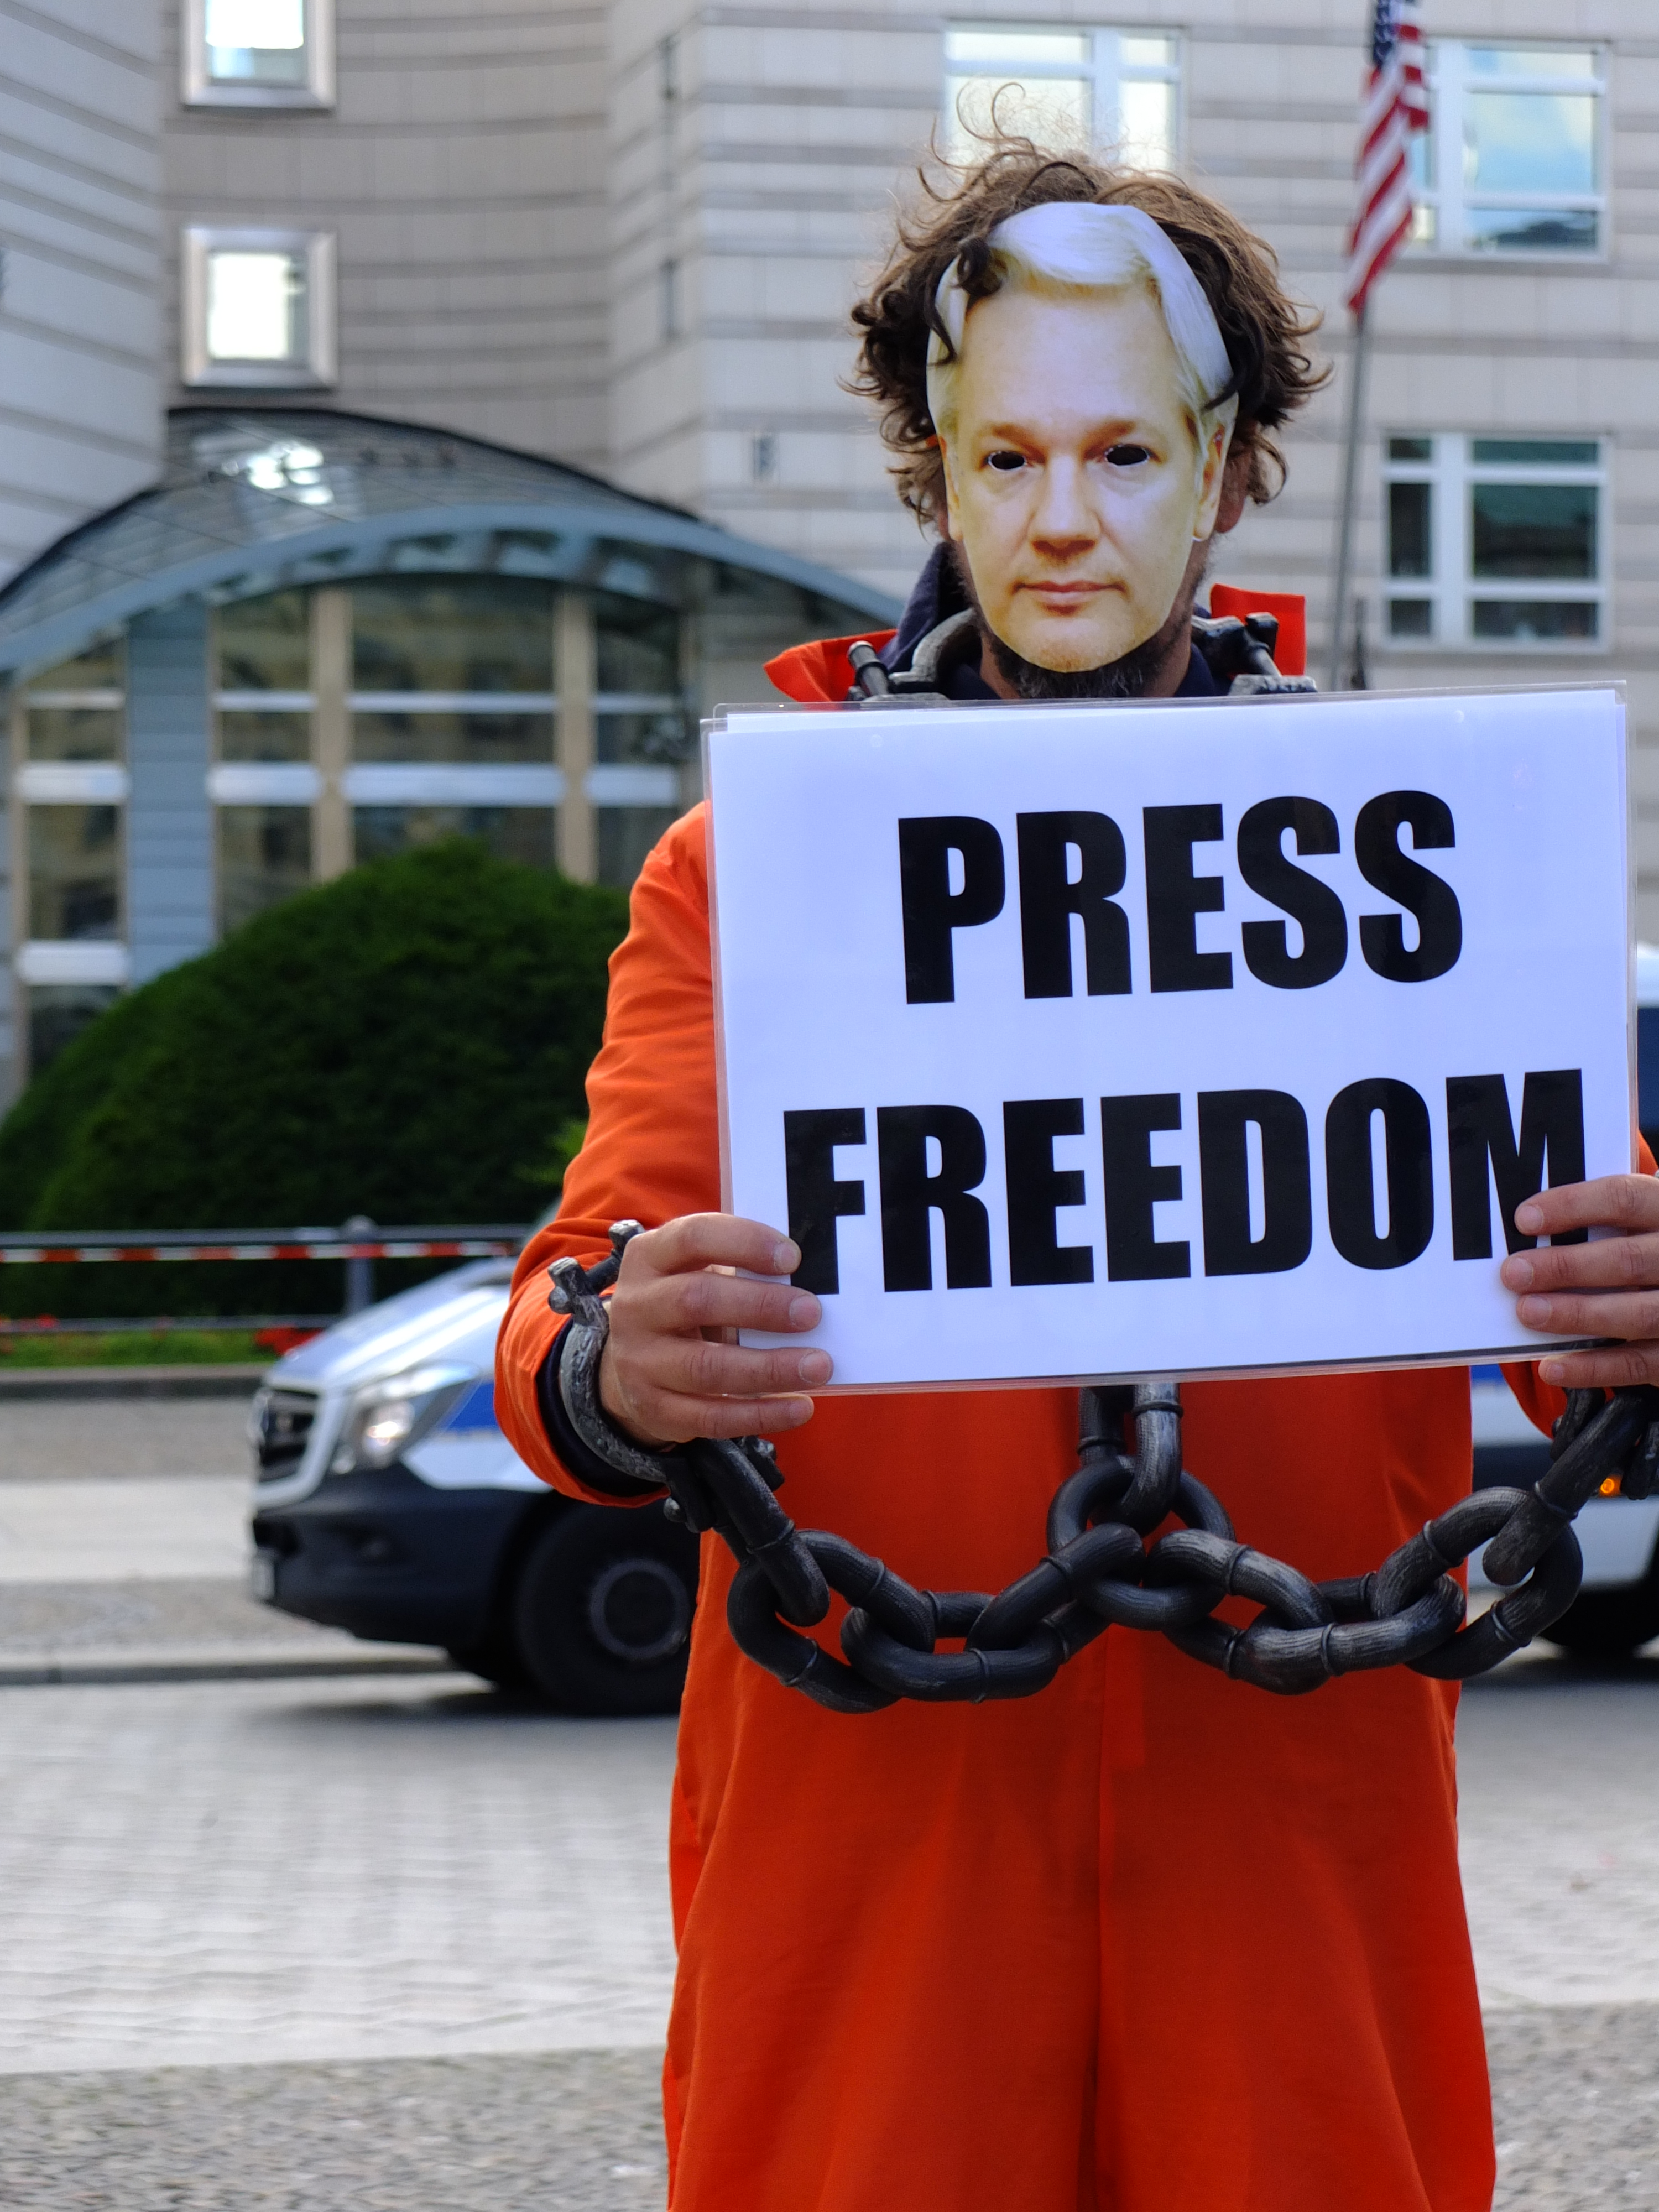 protest_photos:press-freedom-us-embassy-berlin-7sept20.jpg